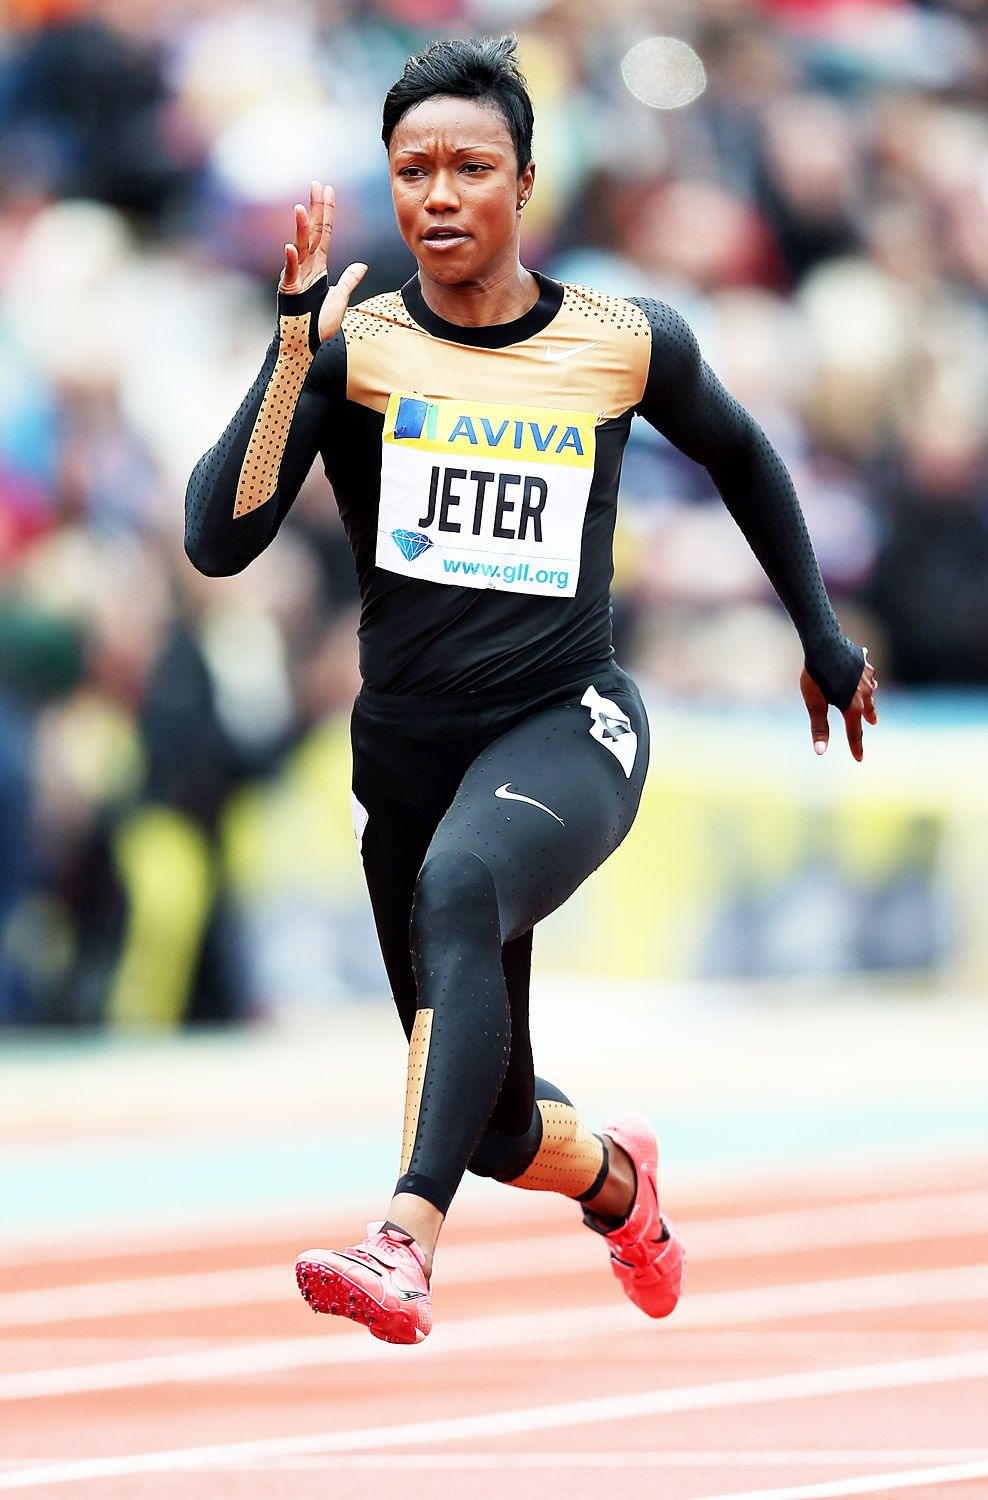 """Carmelita Jeter: Track    Age: 32  Hometown: Los Angeles  Speed queen: The fastest woman alive (100 meters in 10.64 seconds!) is chasing the 1988 world record. """"I don't feel pressure,"""" the single runner tells Us. """"I have my eye on the prize!"""""""